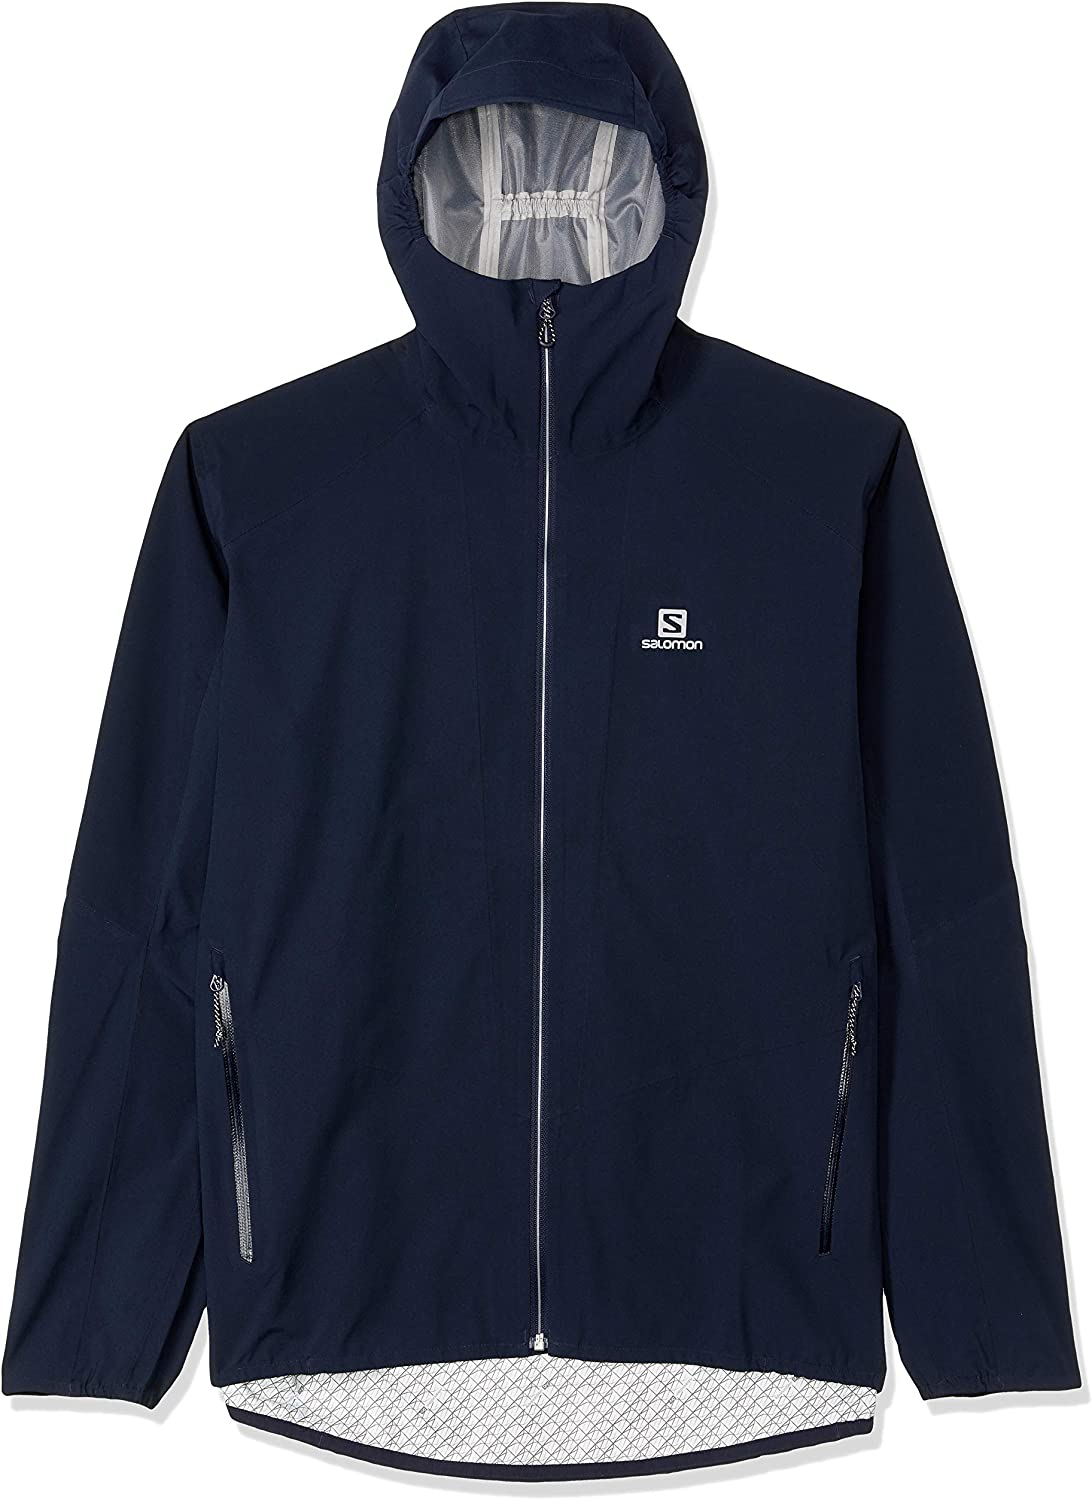 Salomon Men's Outline Waterproof Jacket, Men's